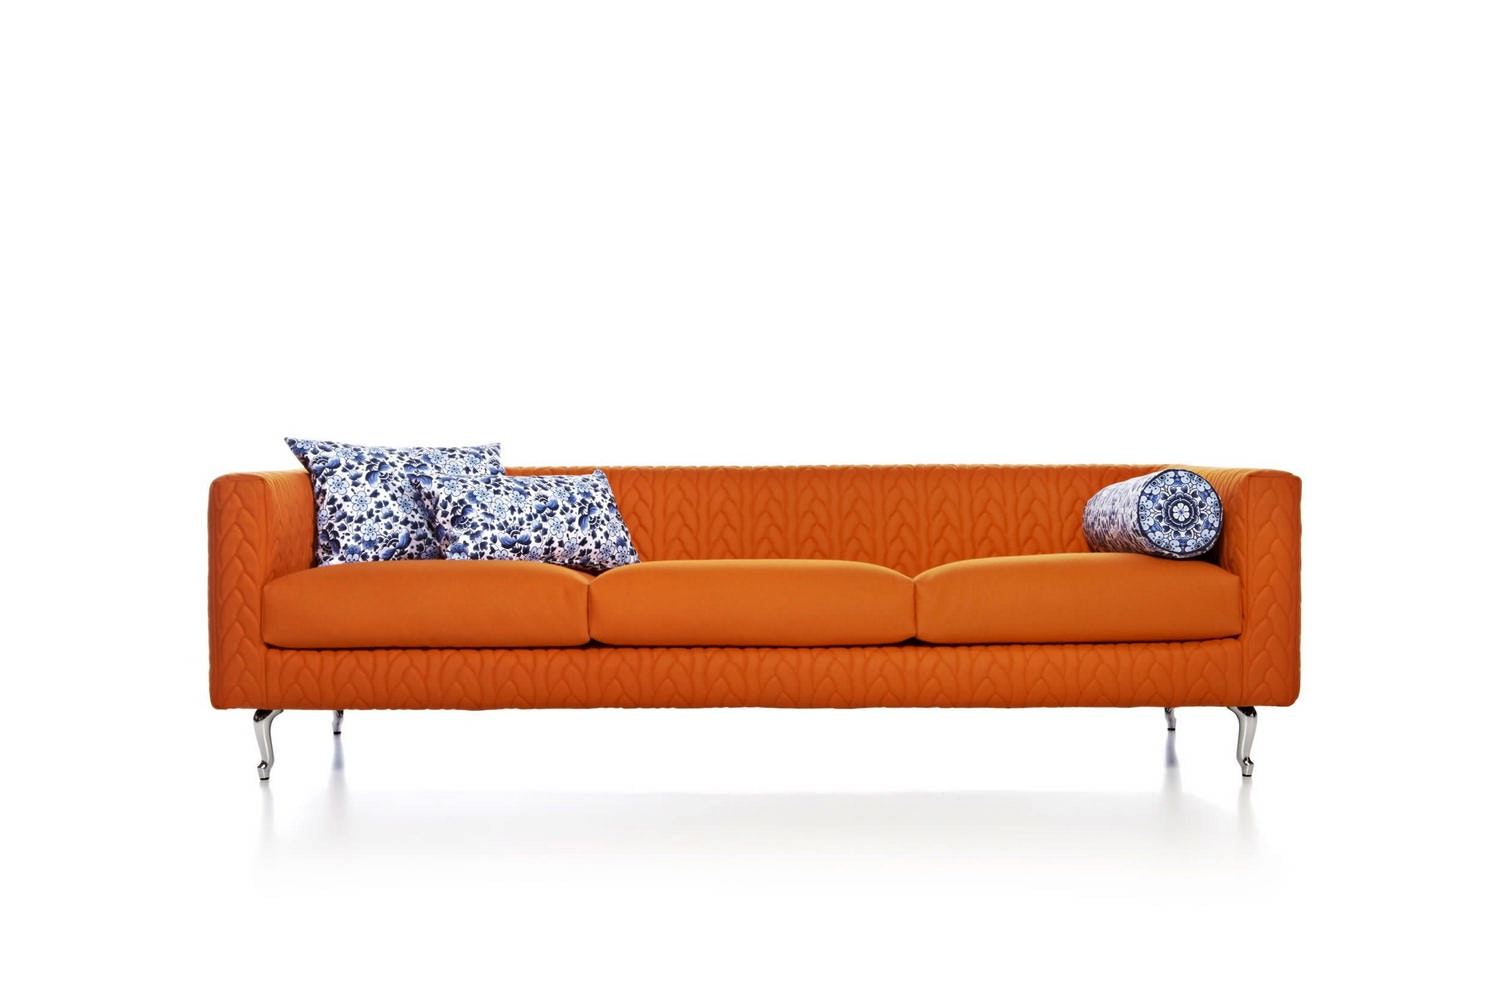 Boutique Delft Blue Jumper Sofa by Marcel Wanders for Moooi